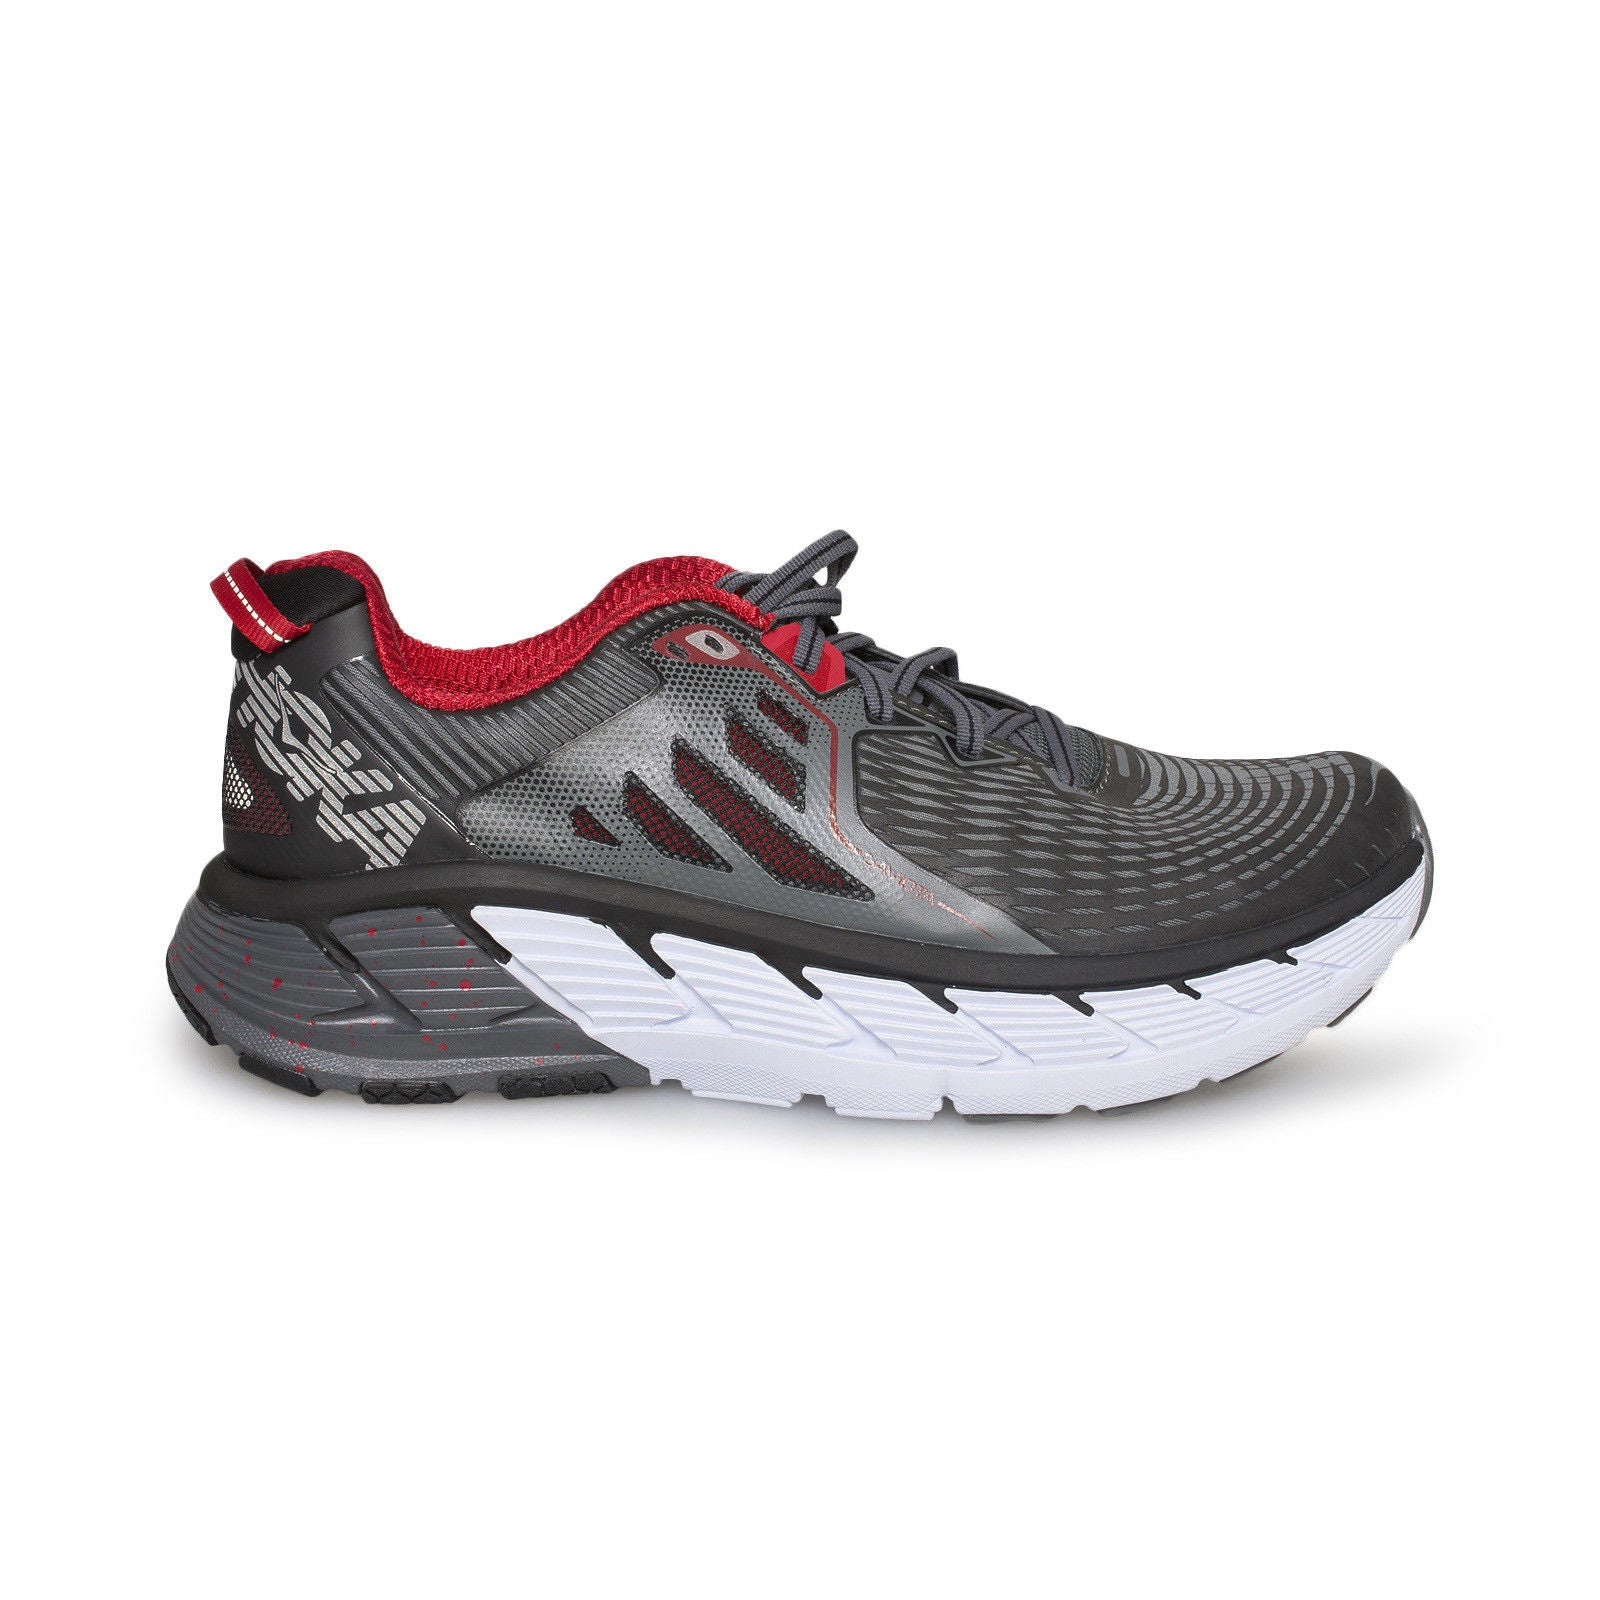 NEW WIDE 2E Men/'s HOKA ONE ONE Gaviota Black//Formula One Running Shoes Gray Red